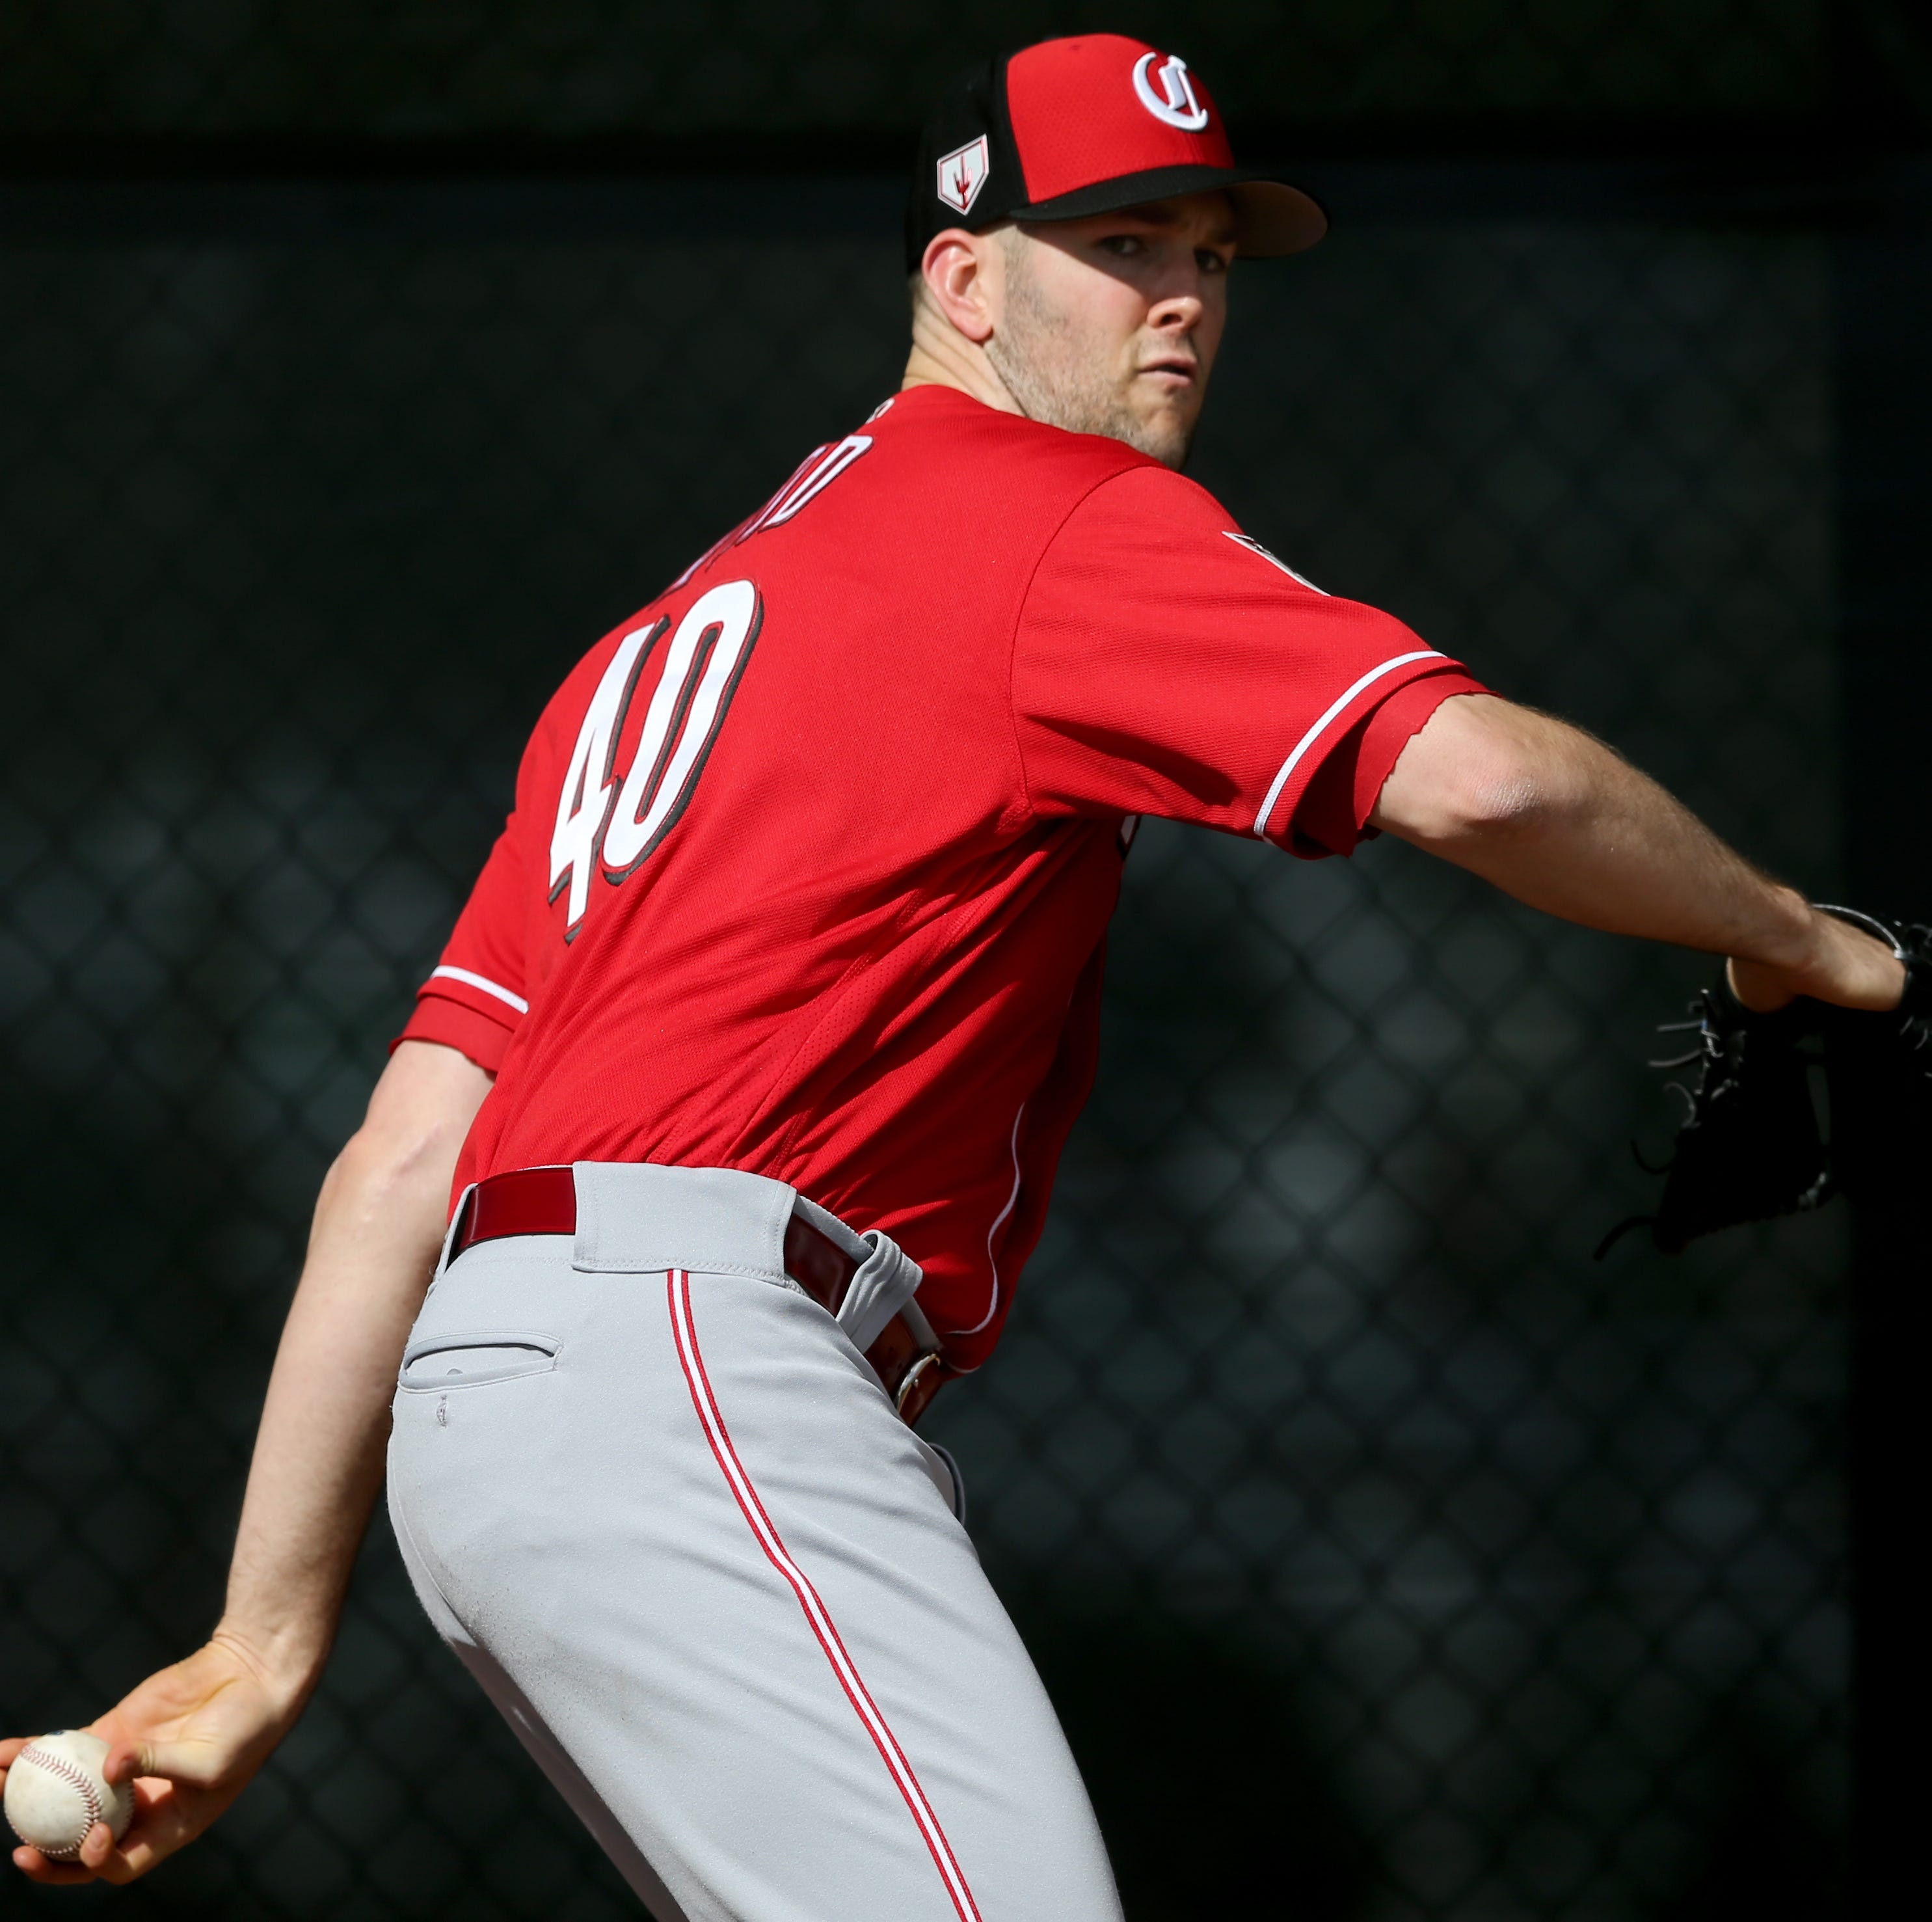 Cincinnati Reds pitcher Alex Wood back on the mound again, will begin season on 10-day injured list